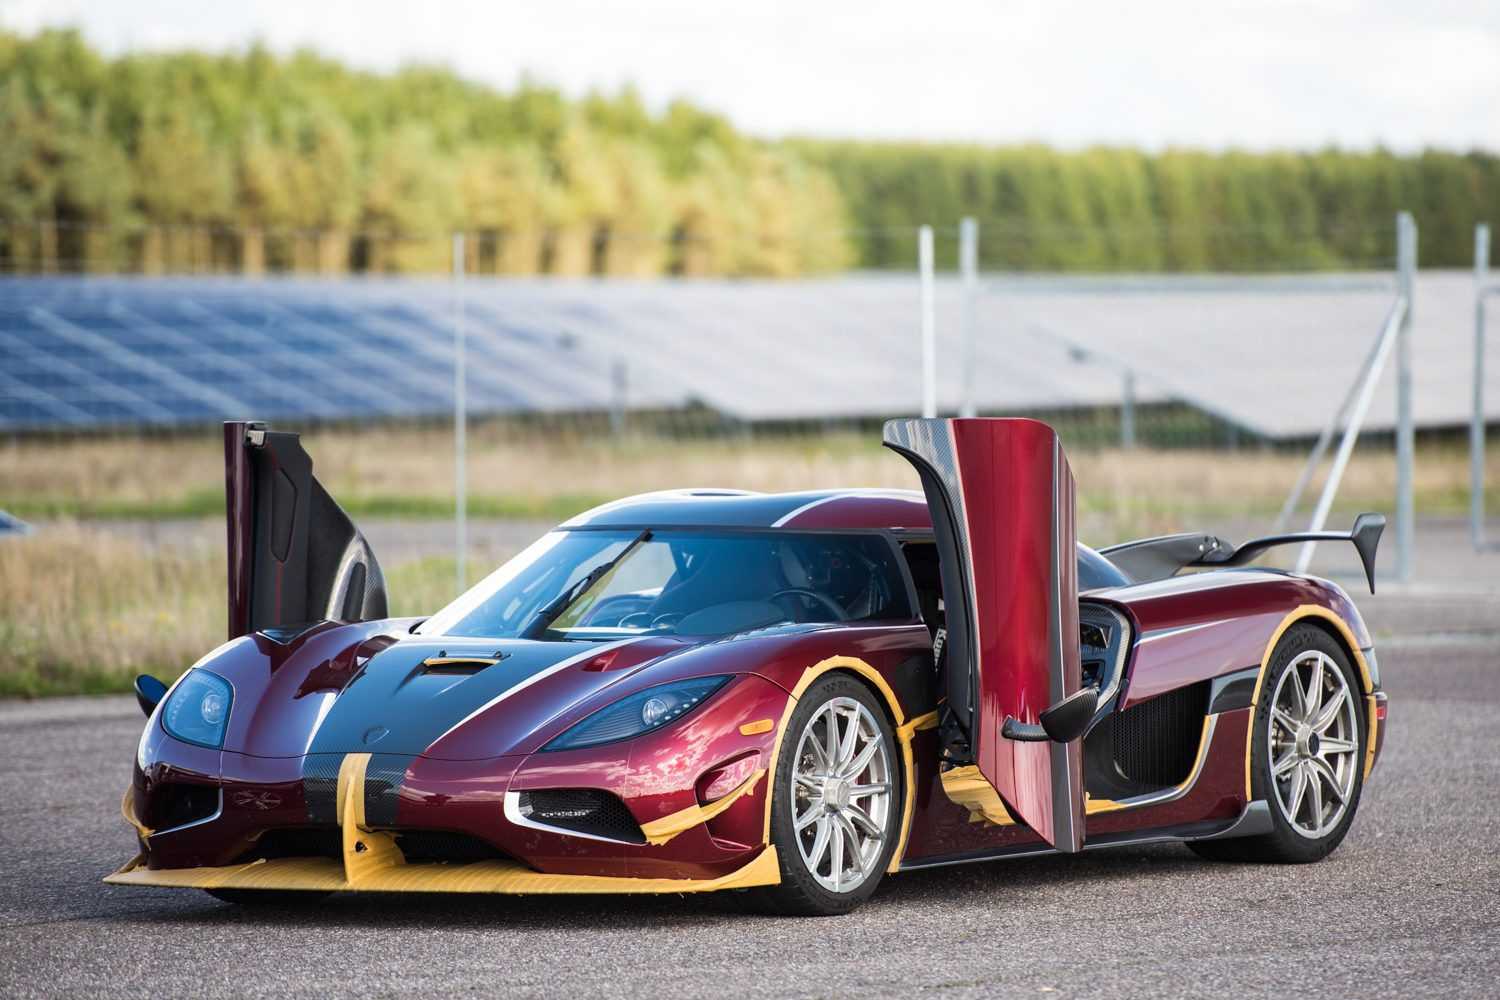 Unlucky, Bugatti — Koenigsegg's Agera RS has shattered the 0-249-0mph record